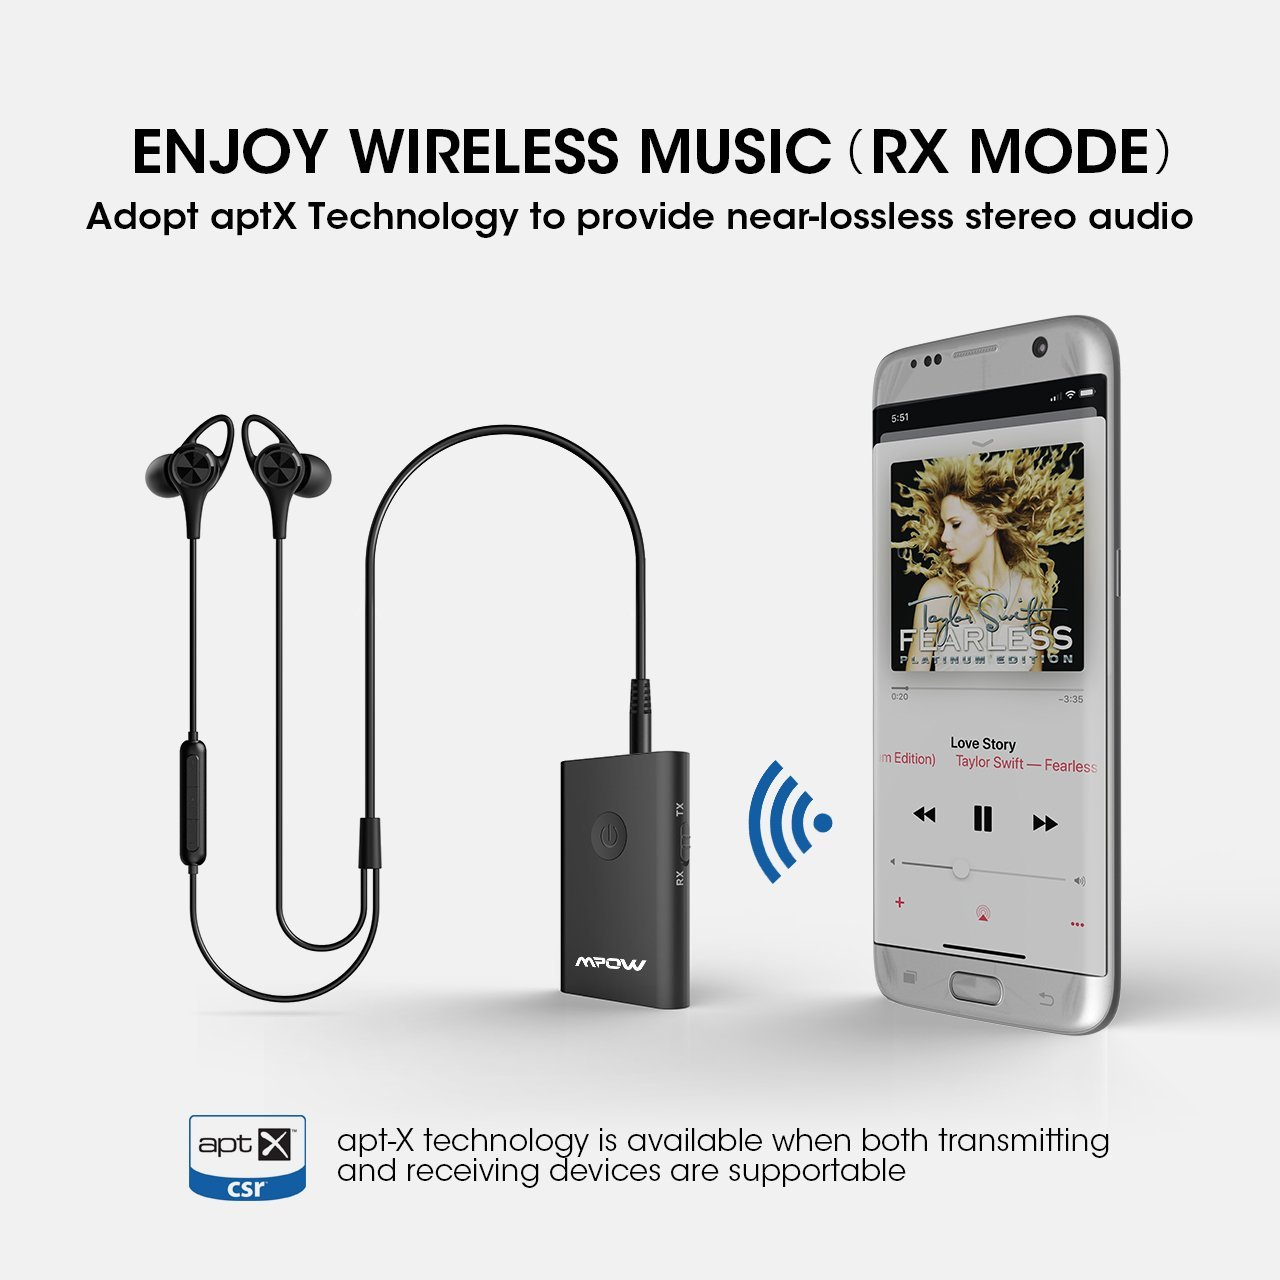 Mpow Bluetooth 42 Transmitter And Receiver 2 In 1 Simple Fm Radio Circuit Use Your Mobile Phones Wireless Adapter With Aptx For Cd Like Voice Enjoyment